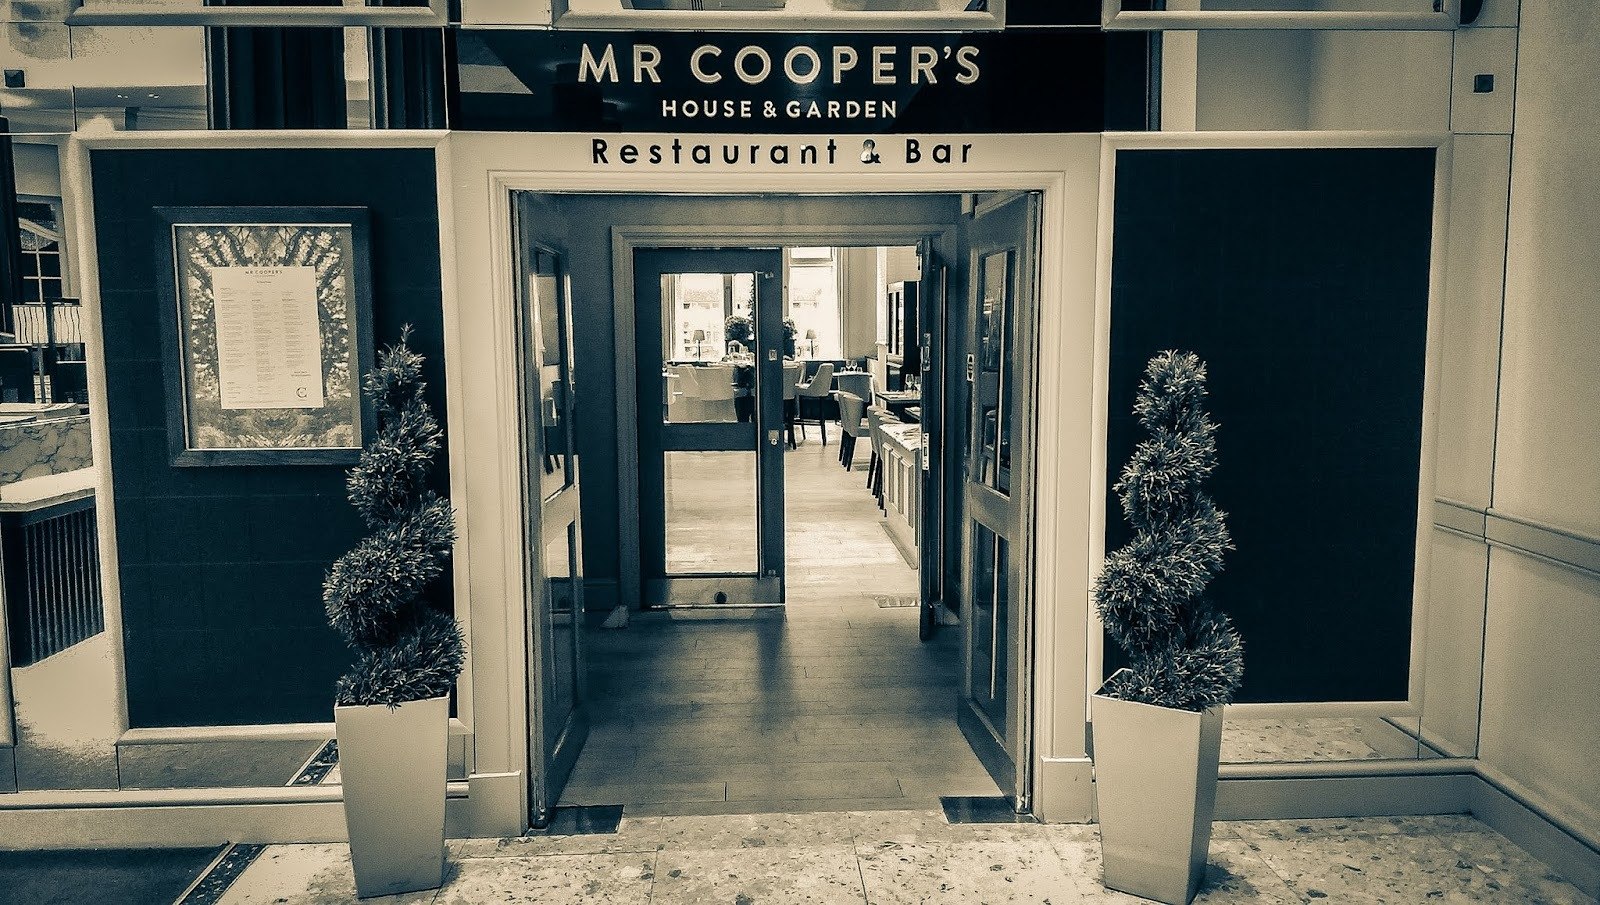 Restaurant Review: Mr Cooper's House and Gardens, Manchester